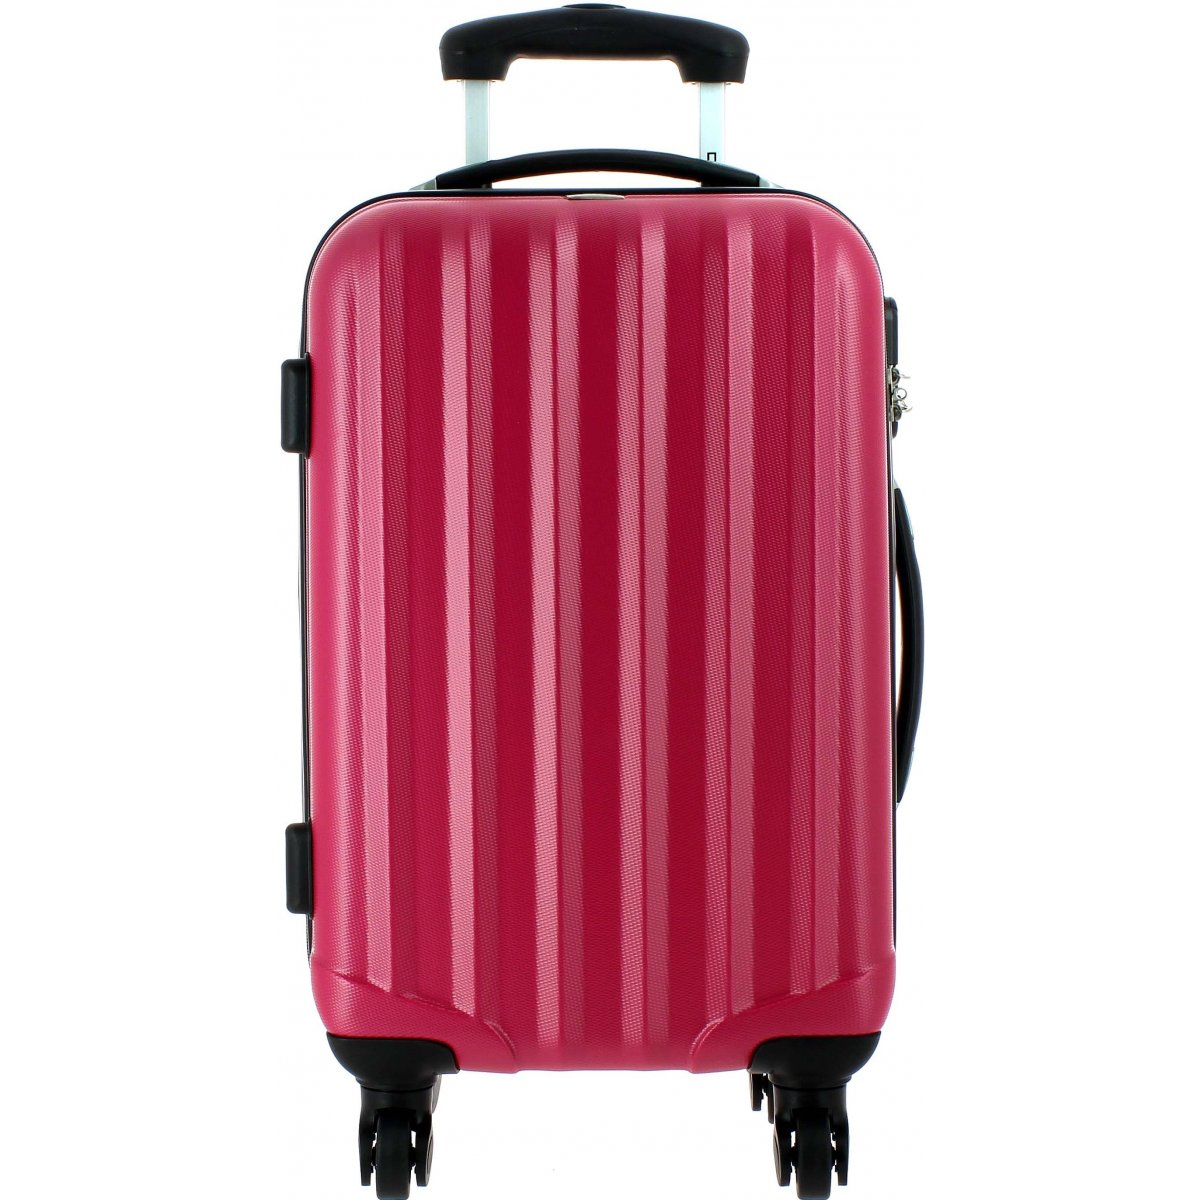 valise cabine david jones ba10111p couleur principale fushia promotion. Black Bedroom Furniture Sets. Home Design Ideas